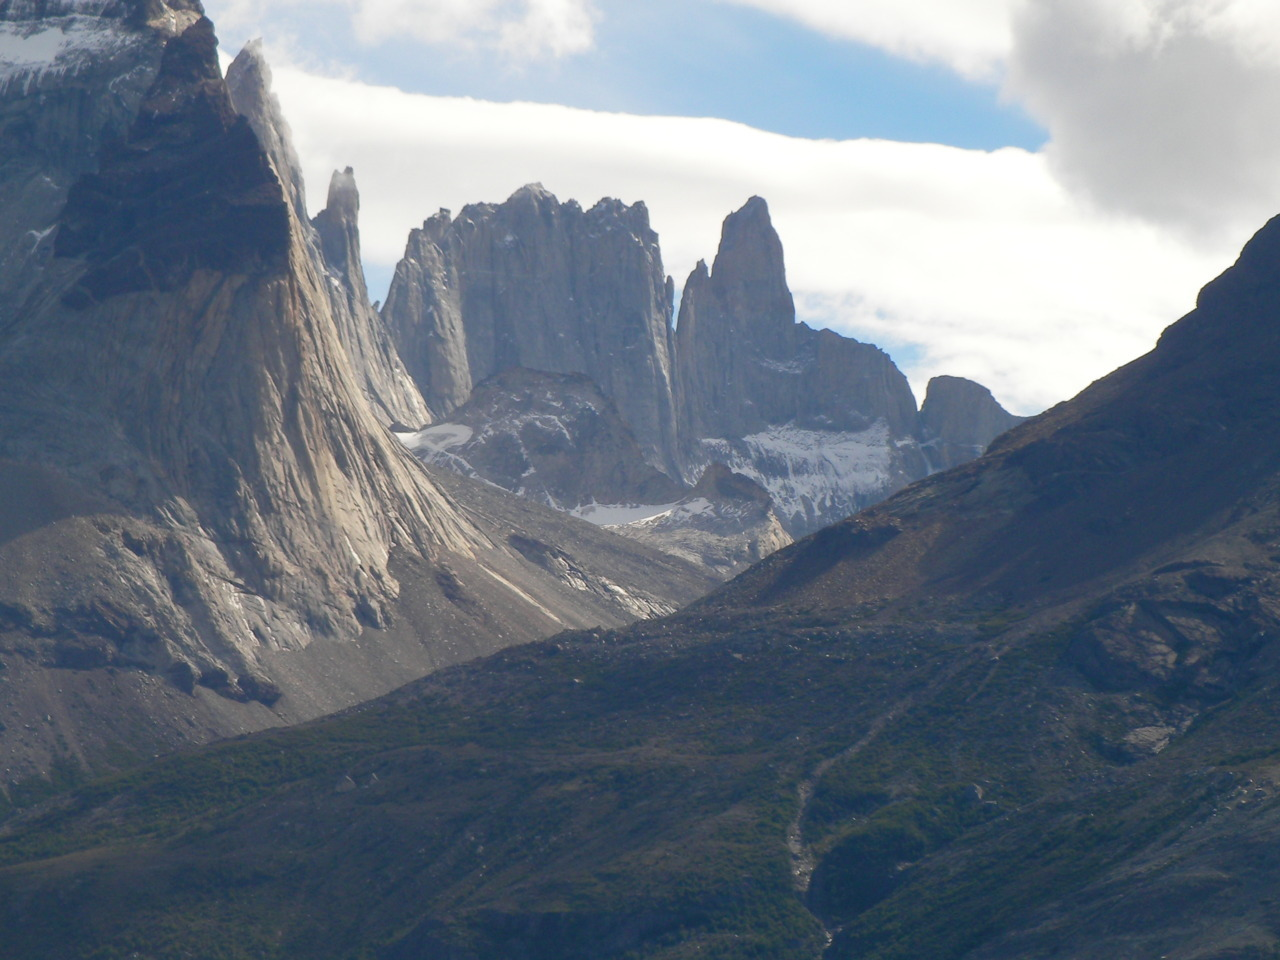 Photograph. Rugged granite mountains, rise into the cloudy sky in jagged toothy ridges in the Torres Del Paine National Park. Their grey flanks are bare of vegetation, and white snow lingers in the shade.